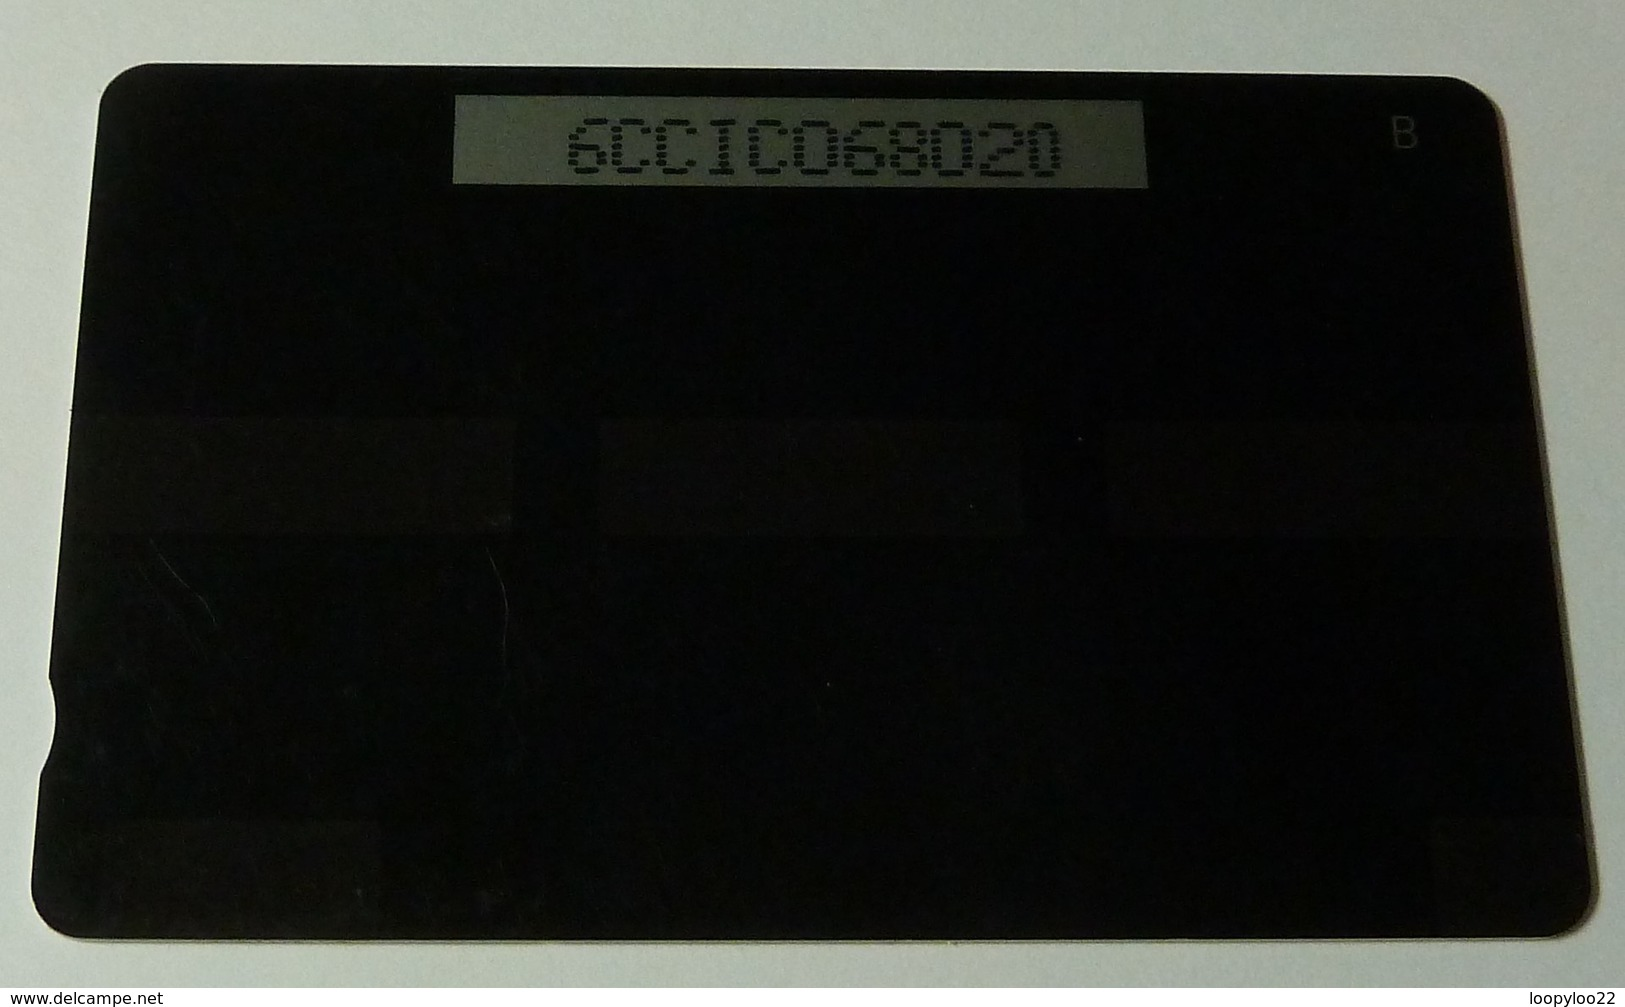 CAYMAN ISLANDS - GPT - CAY- 6C - Museum At Night - 6CCIC - Silver Strip - $7.50 - Used - Cayman Islands